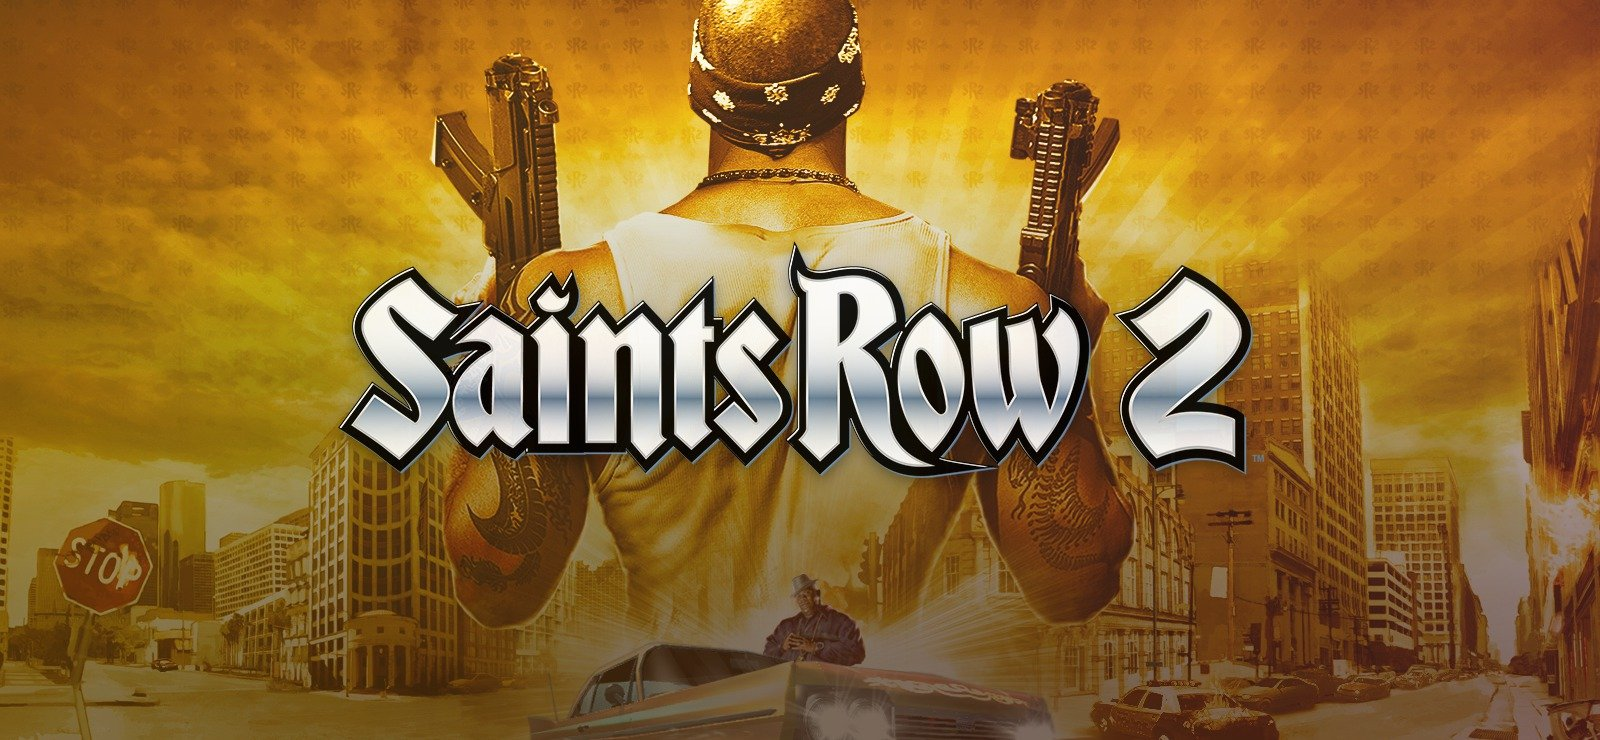 Saints Row 2 is here to f&$@ up Xbox One backward